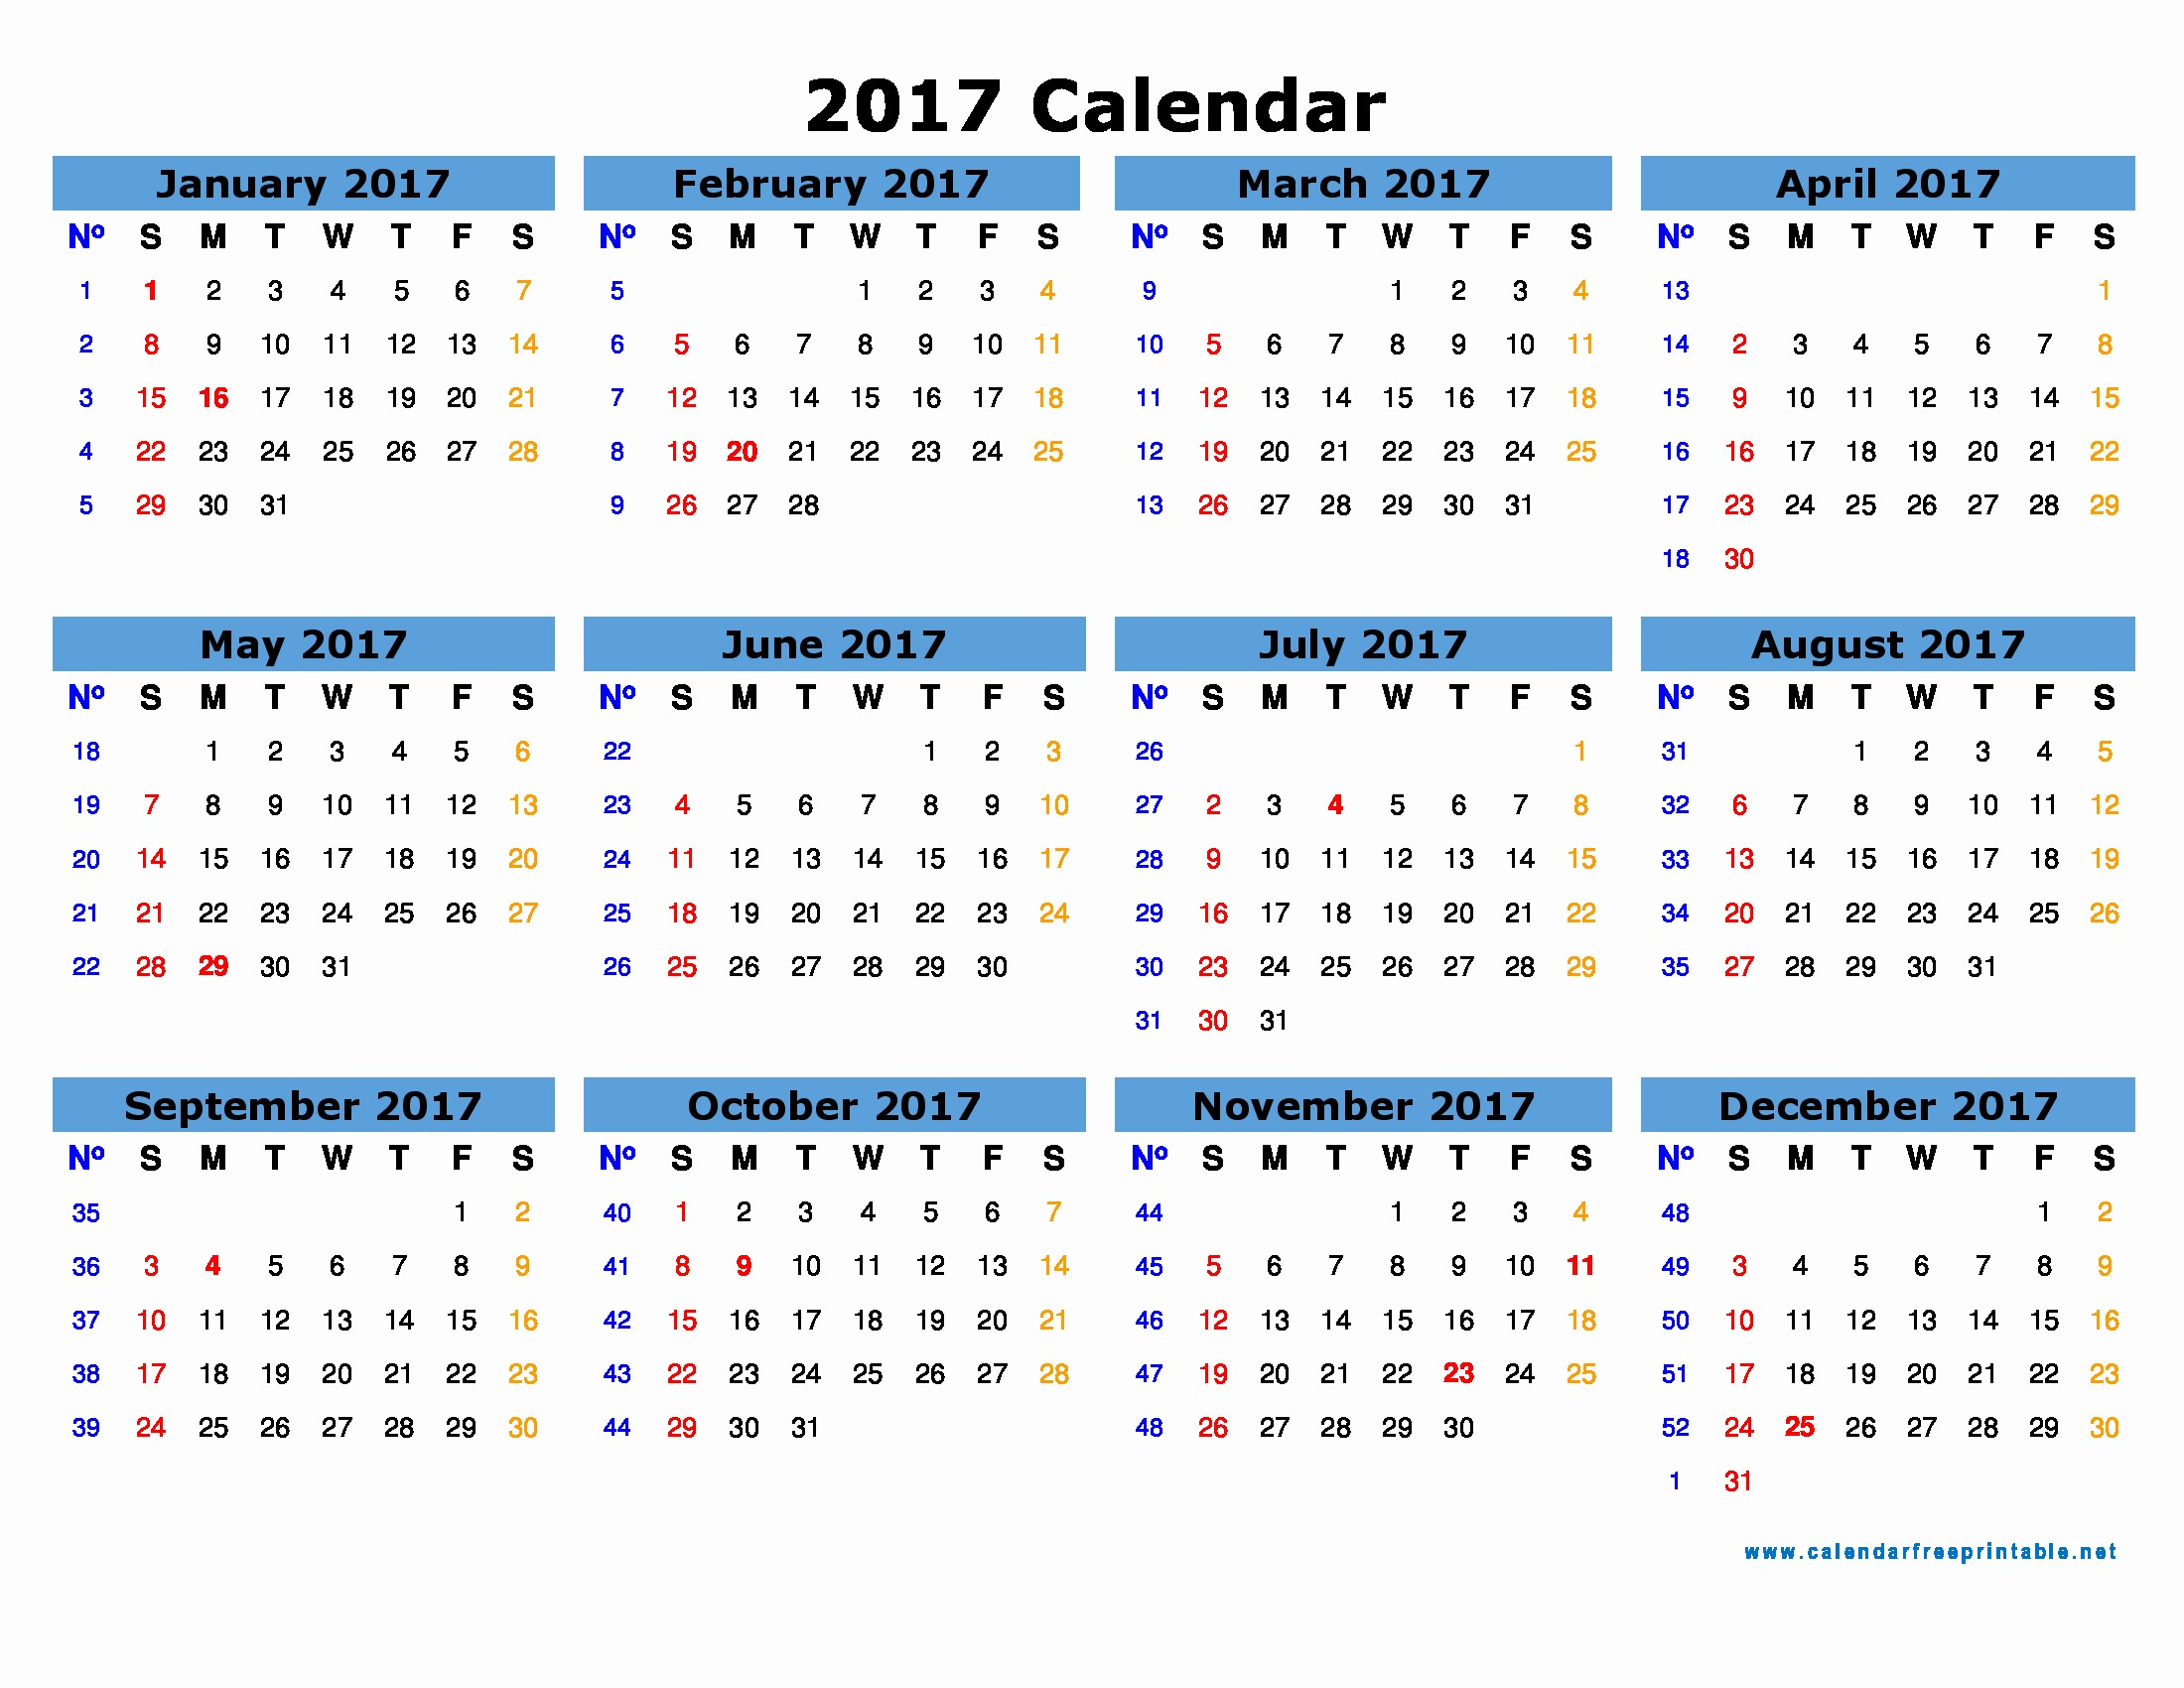 2017 Year Calendar Printable Free Elegant Free 2017 Calendar with Holidays